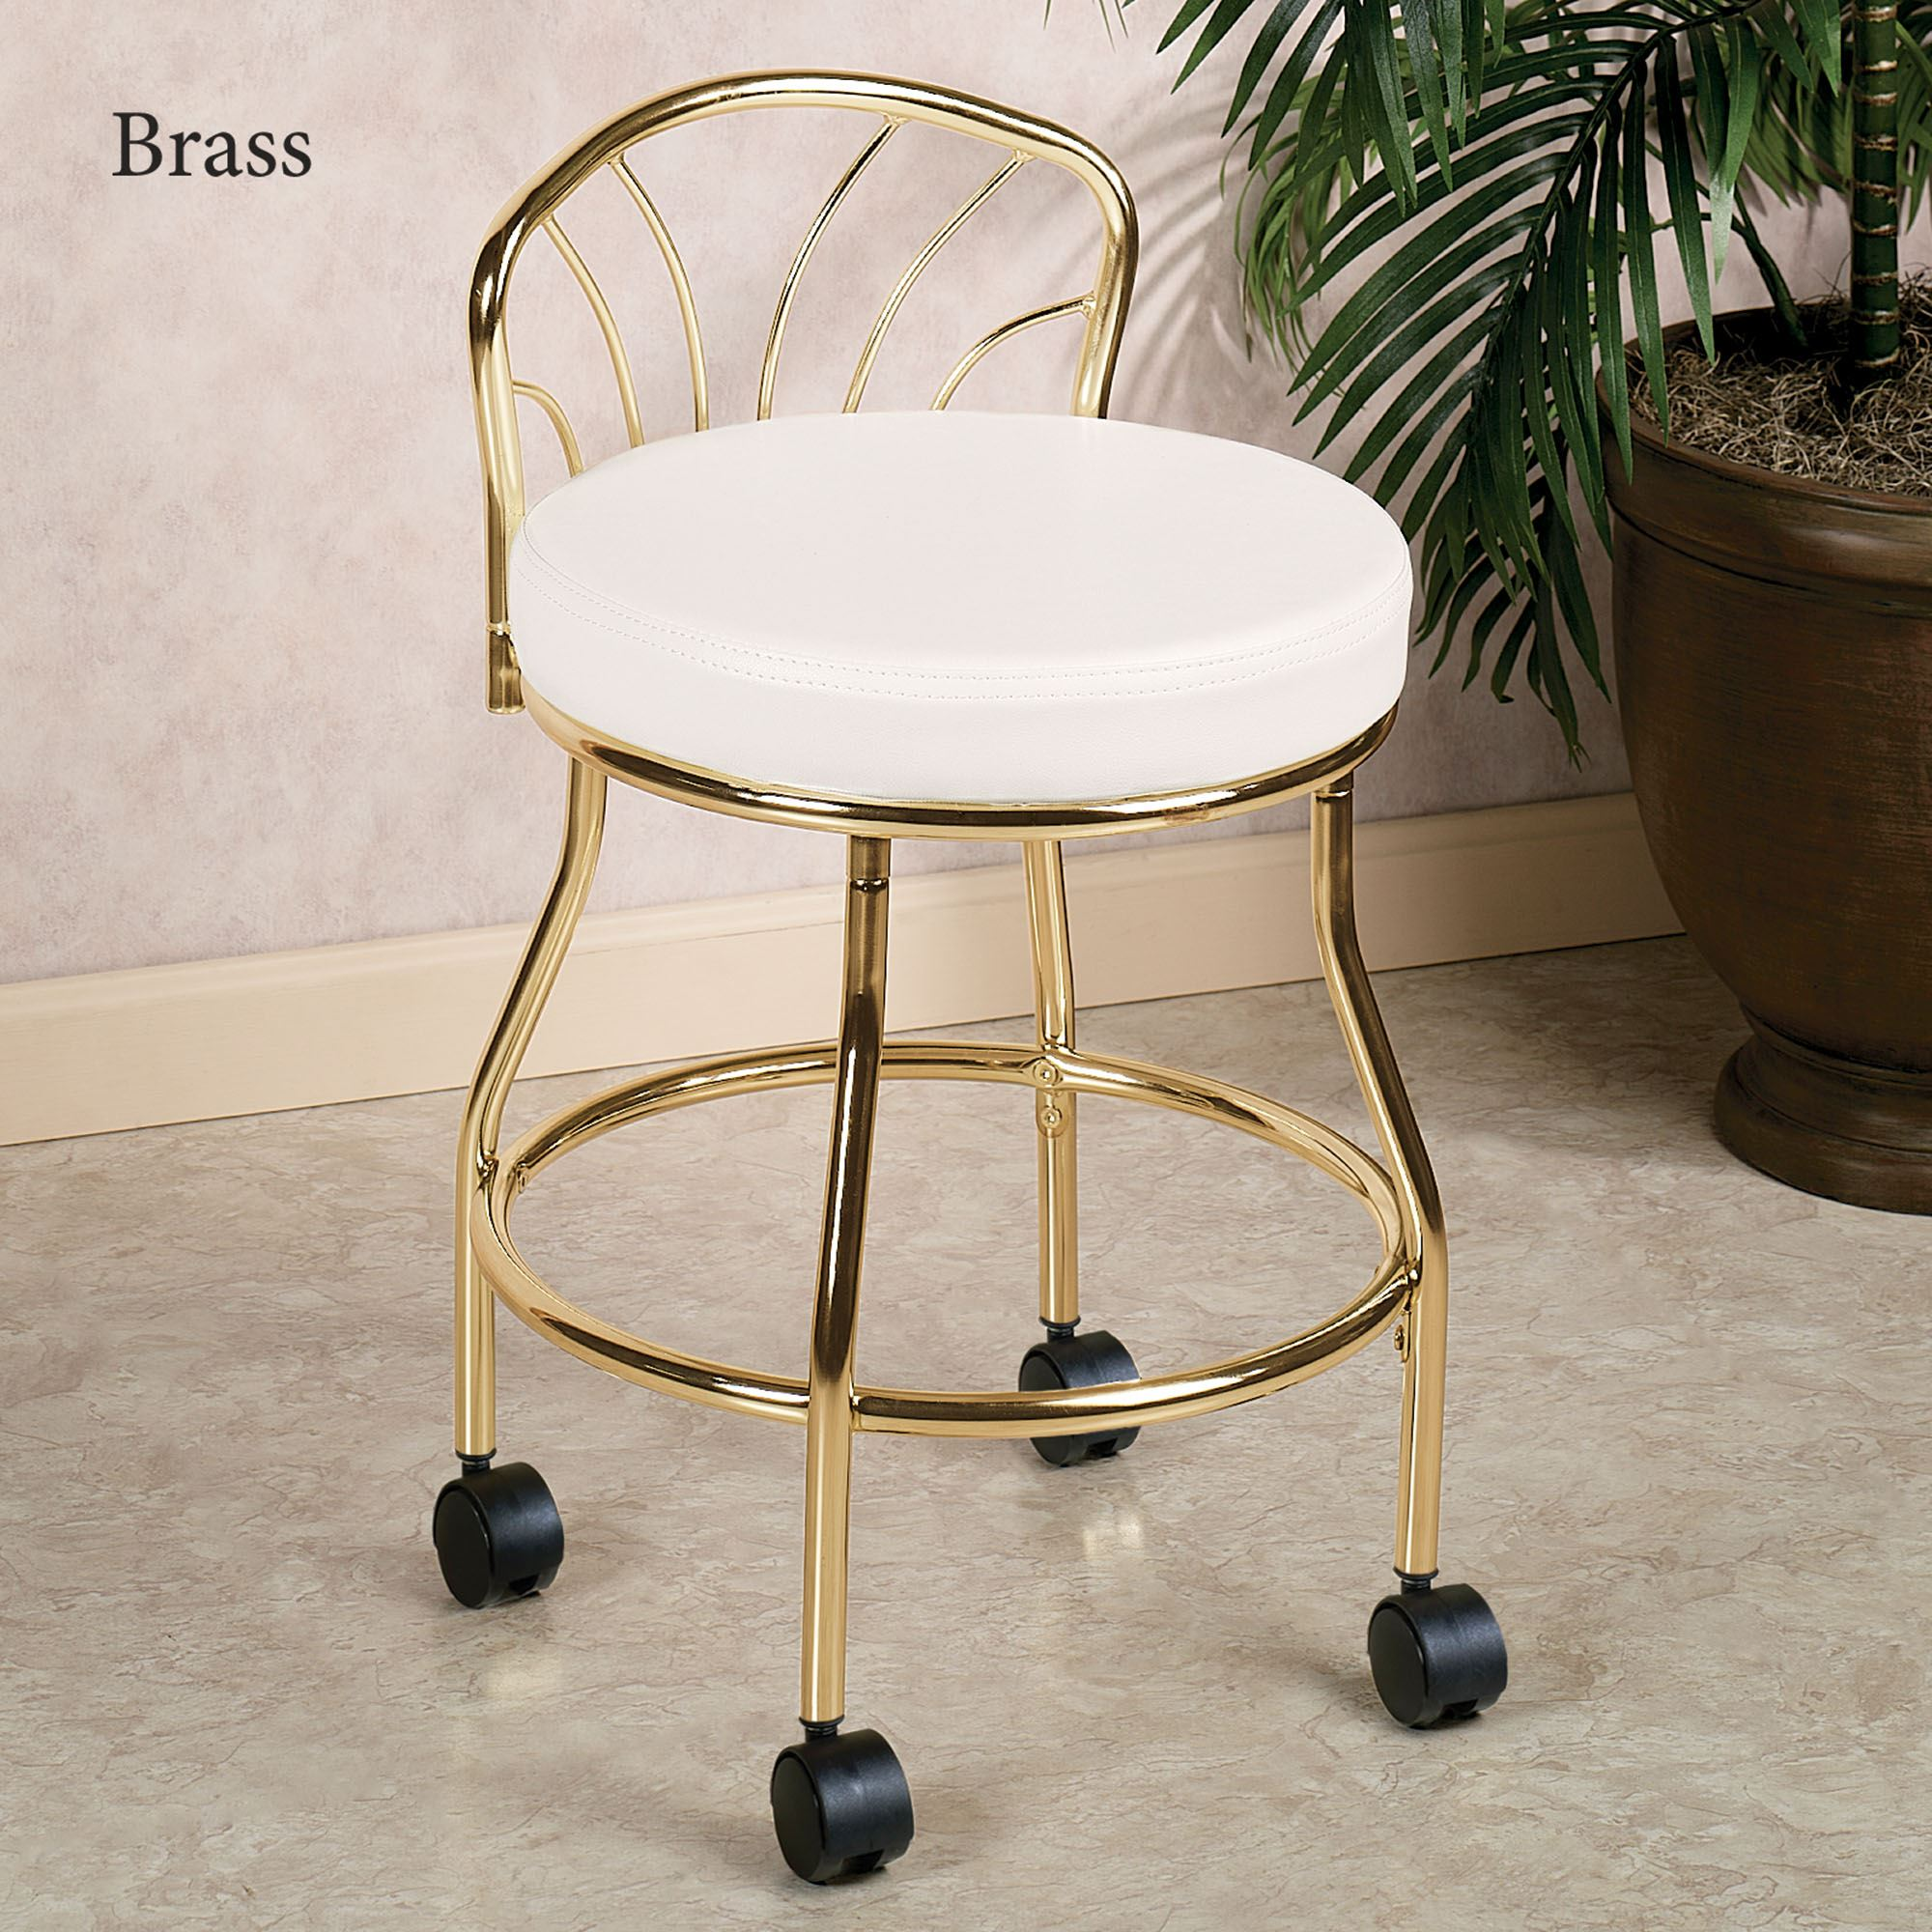 bathroom makeup chair fabric covers for chairs flare back metallic finish vanity with casters oe use n300 ni vc